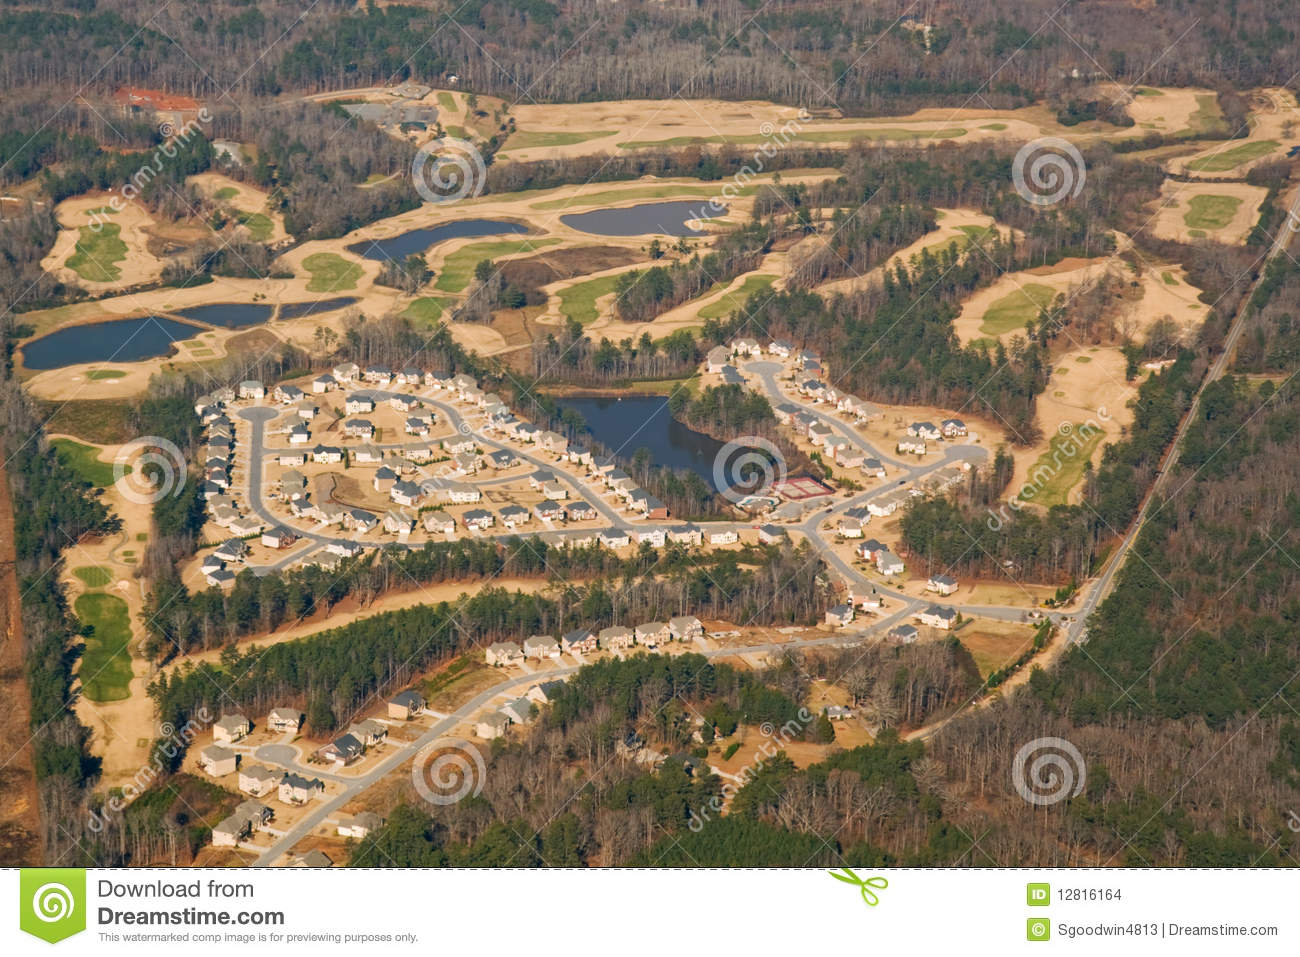 Aerial view of a golf course and housing developme